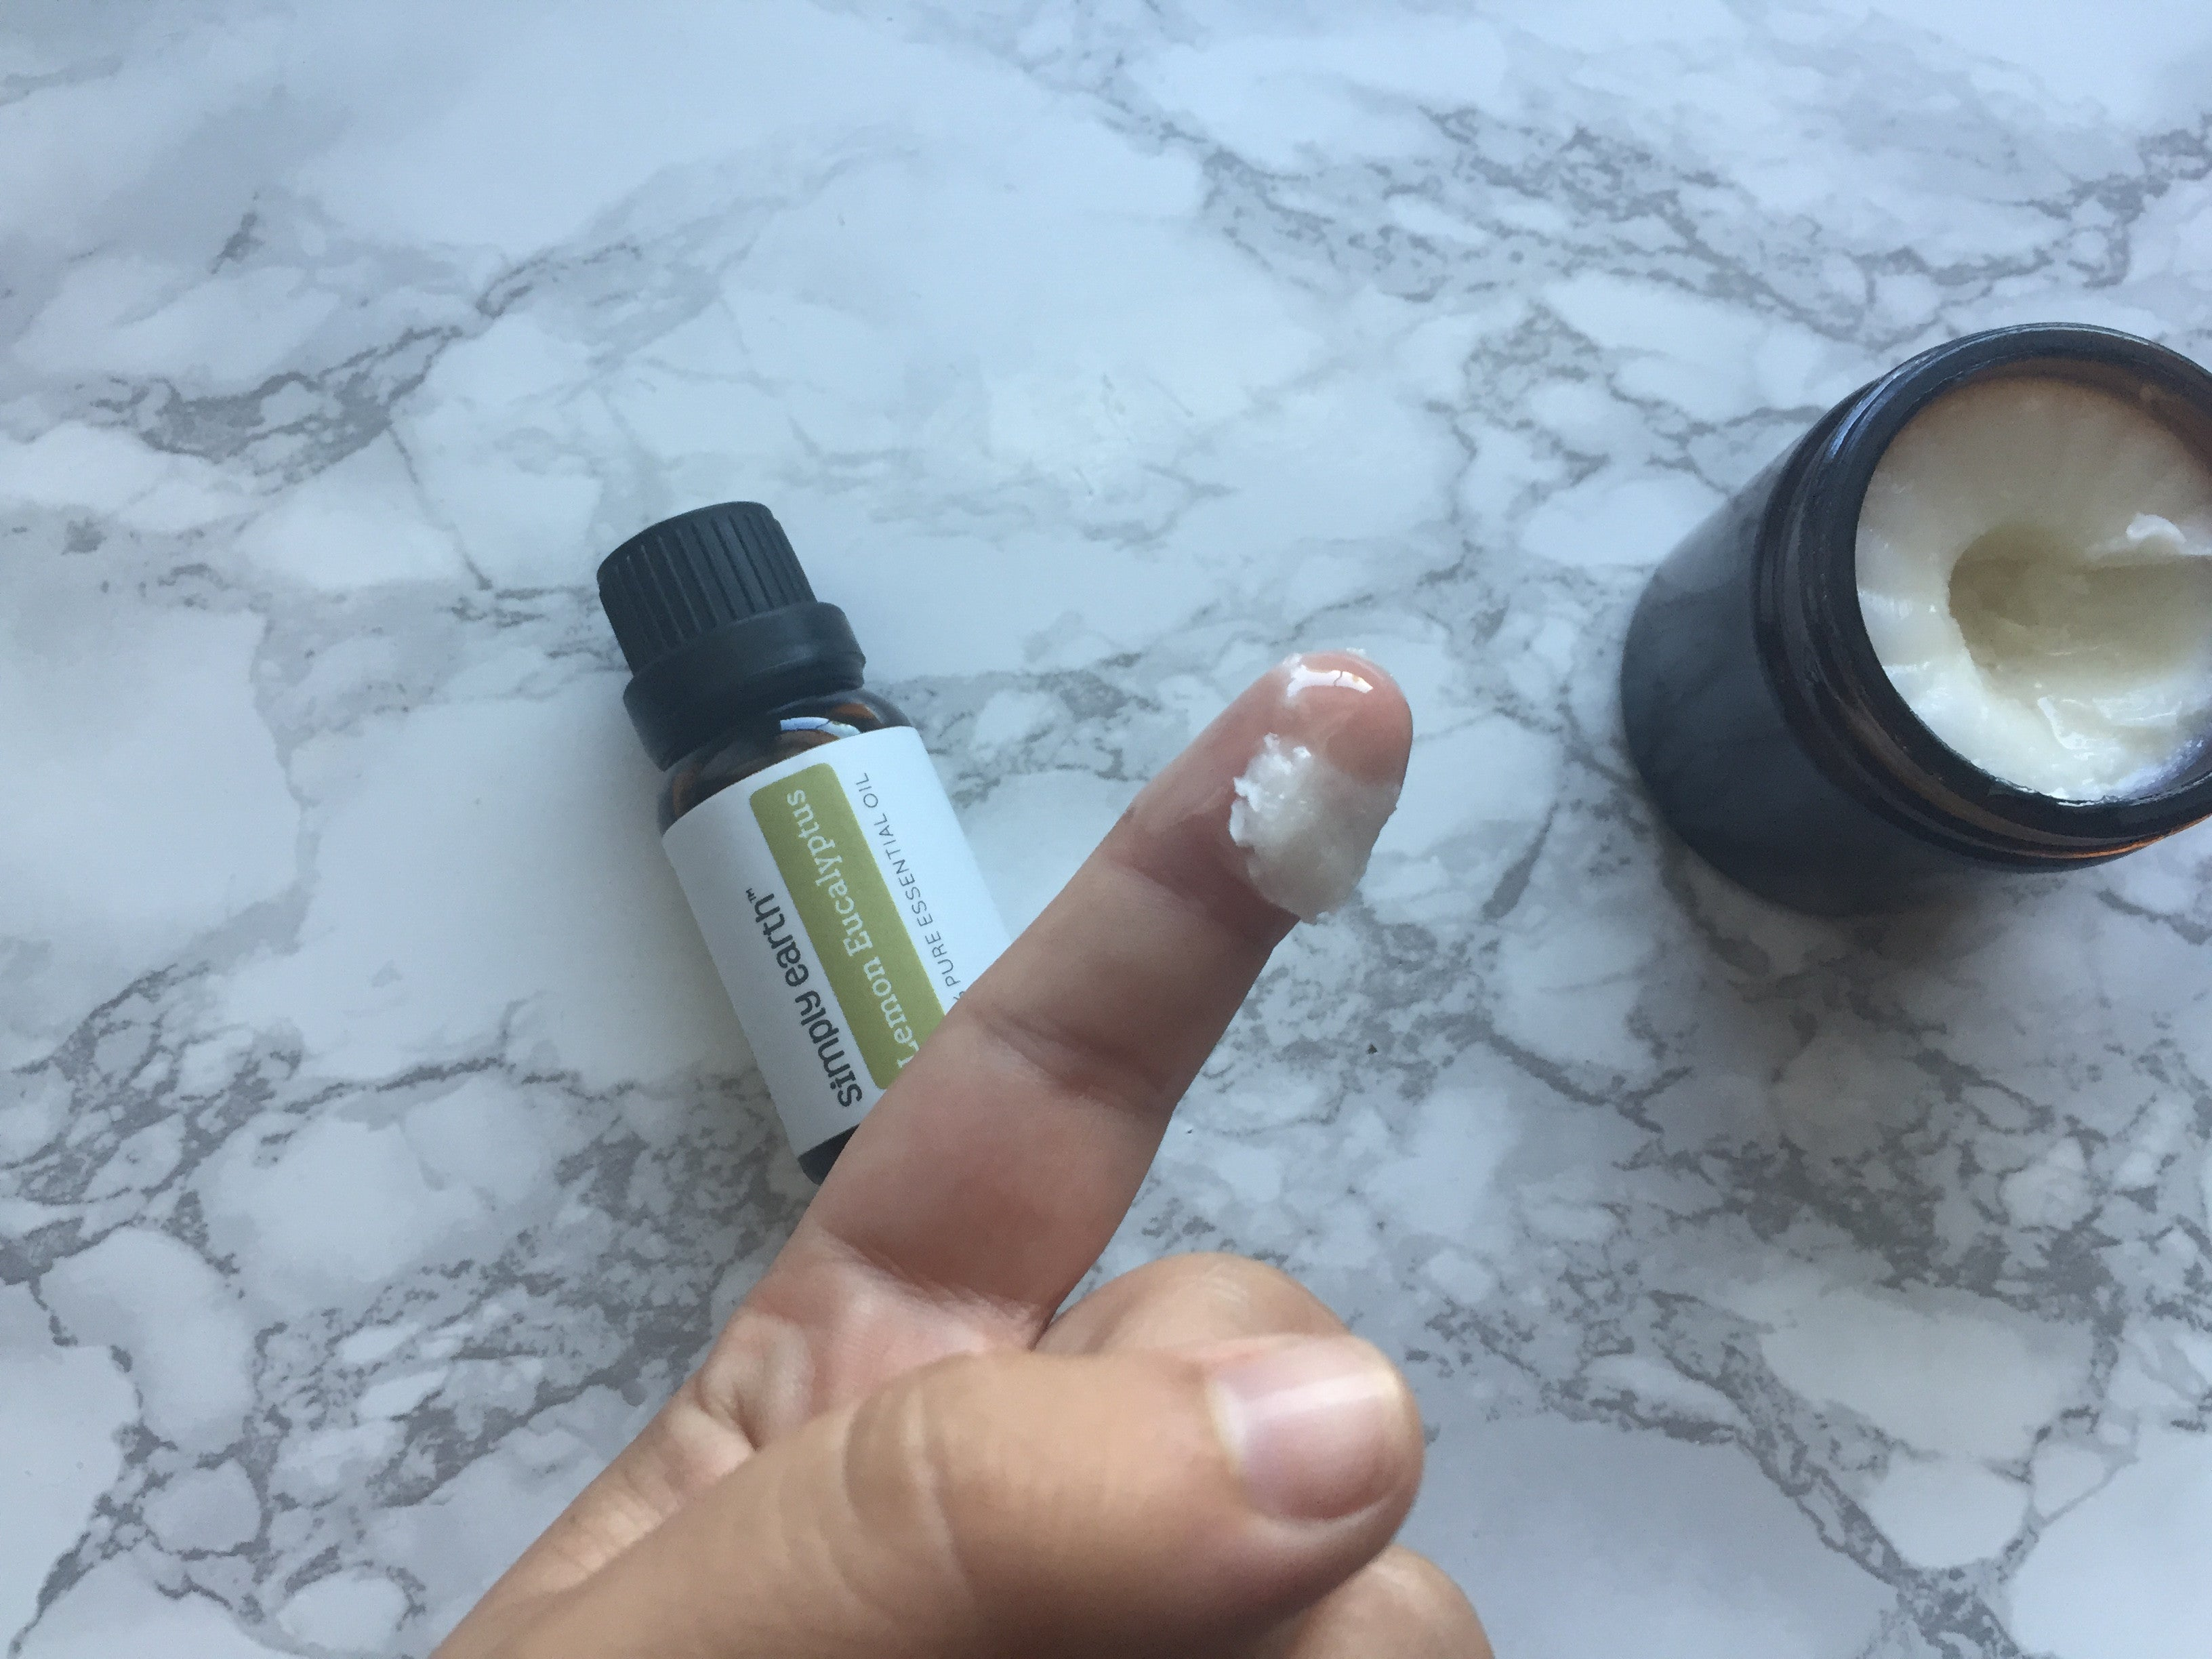 DIY Essential Oil Deodorant, Natural Deodorant Essential Oils, Homemade Deodorant with Essential Oils